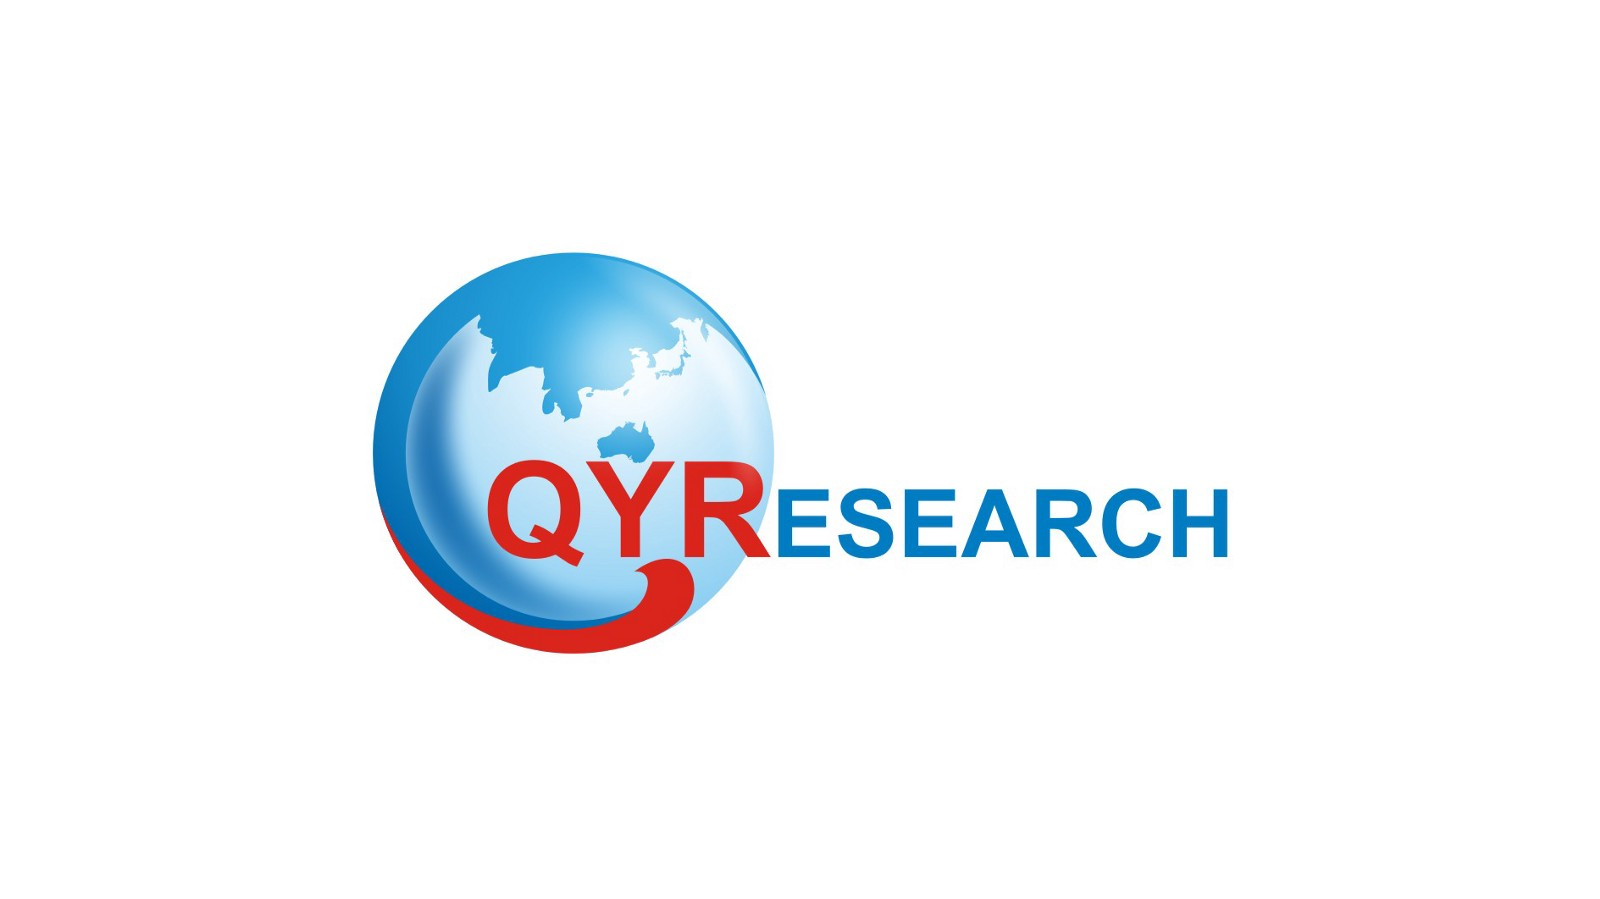 Global Digital Printing Press Market: Industry Analysis and Opportunities Assessment, Product Types and Application, Regional Outlook, Leading Players during the forecast period 2018-2025